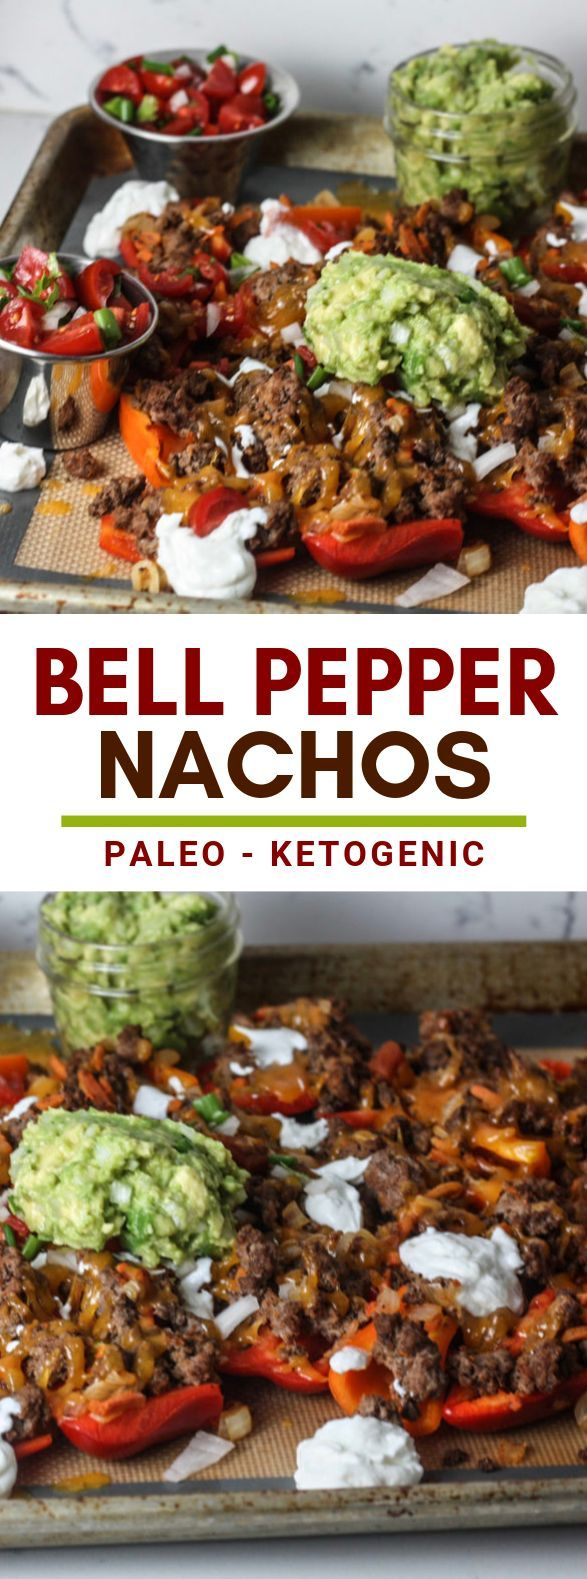 Bell Pepper Nachos #paleo #ketodiet #bellpeppers